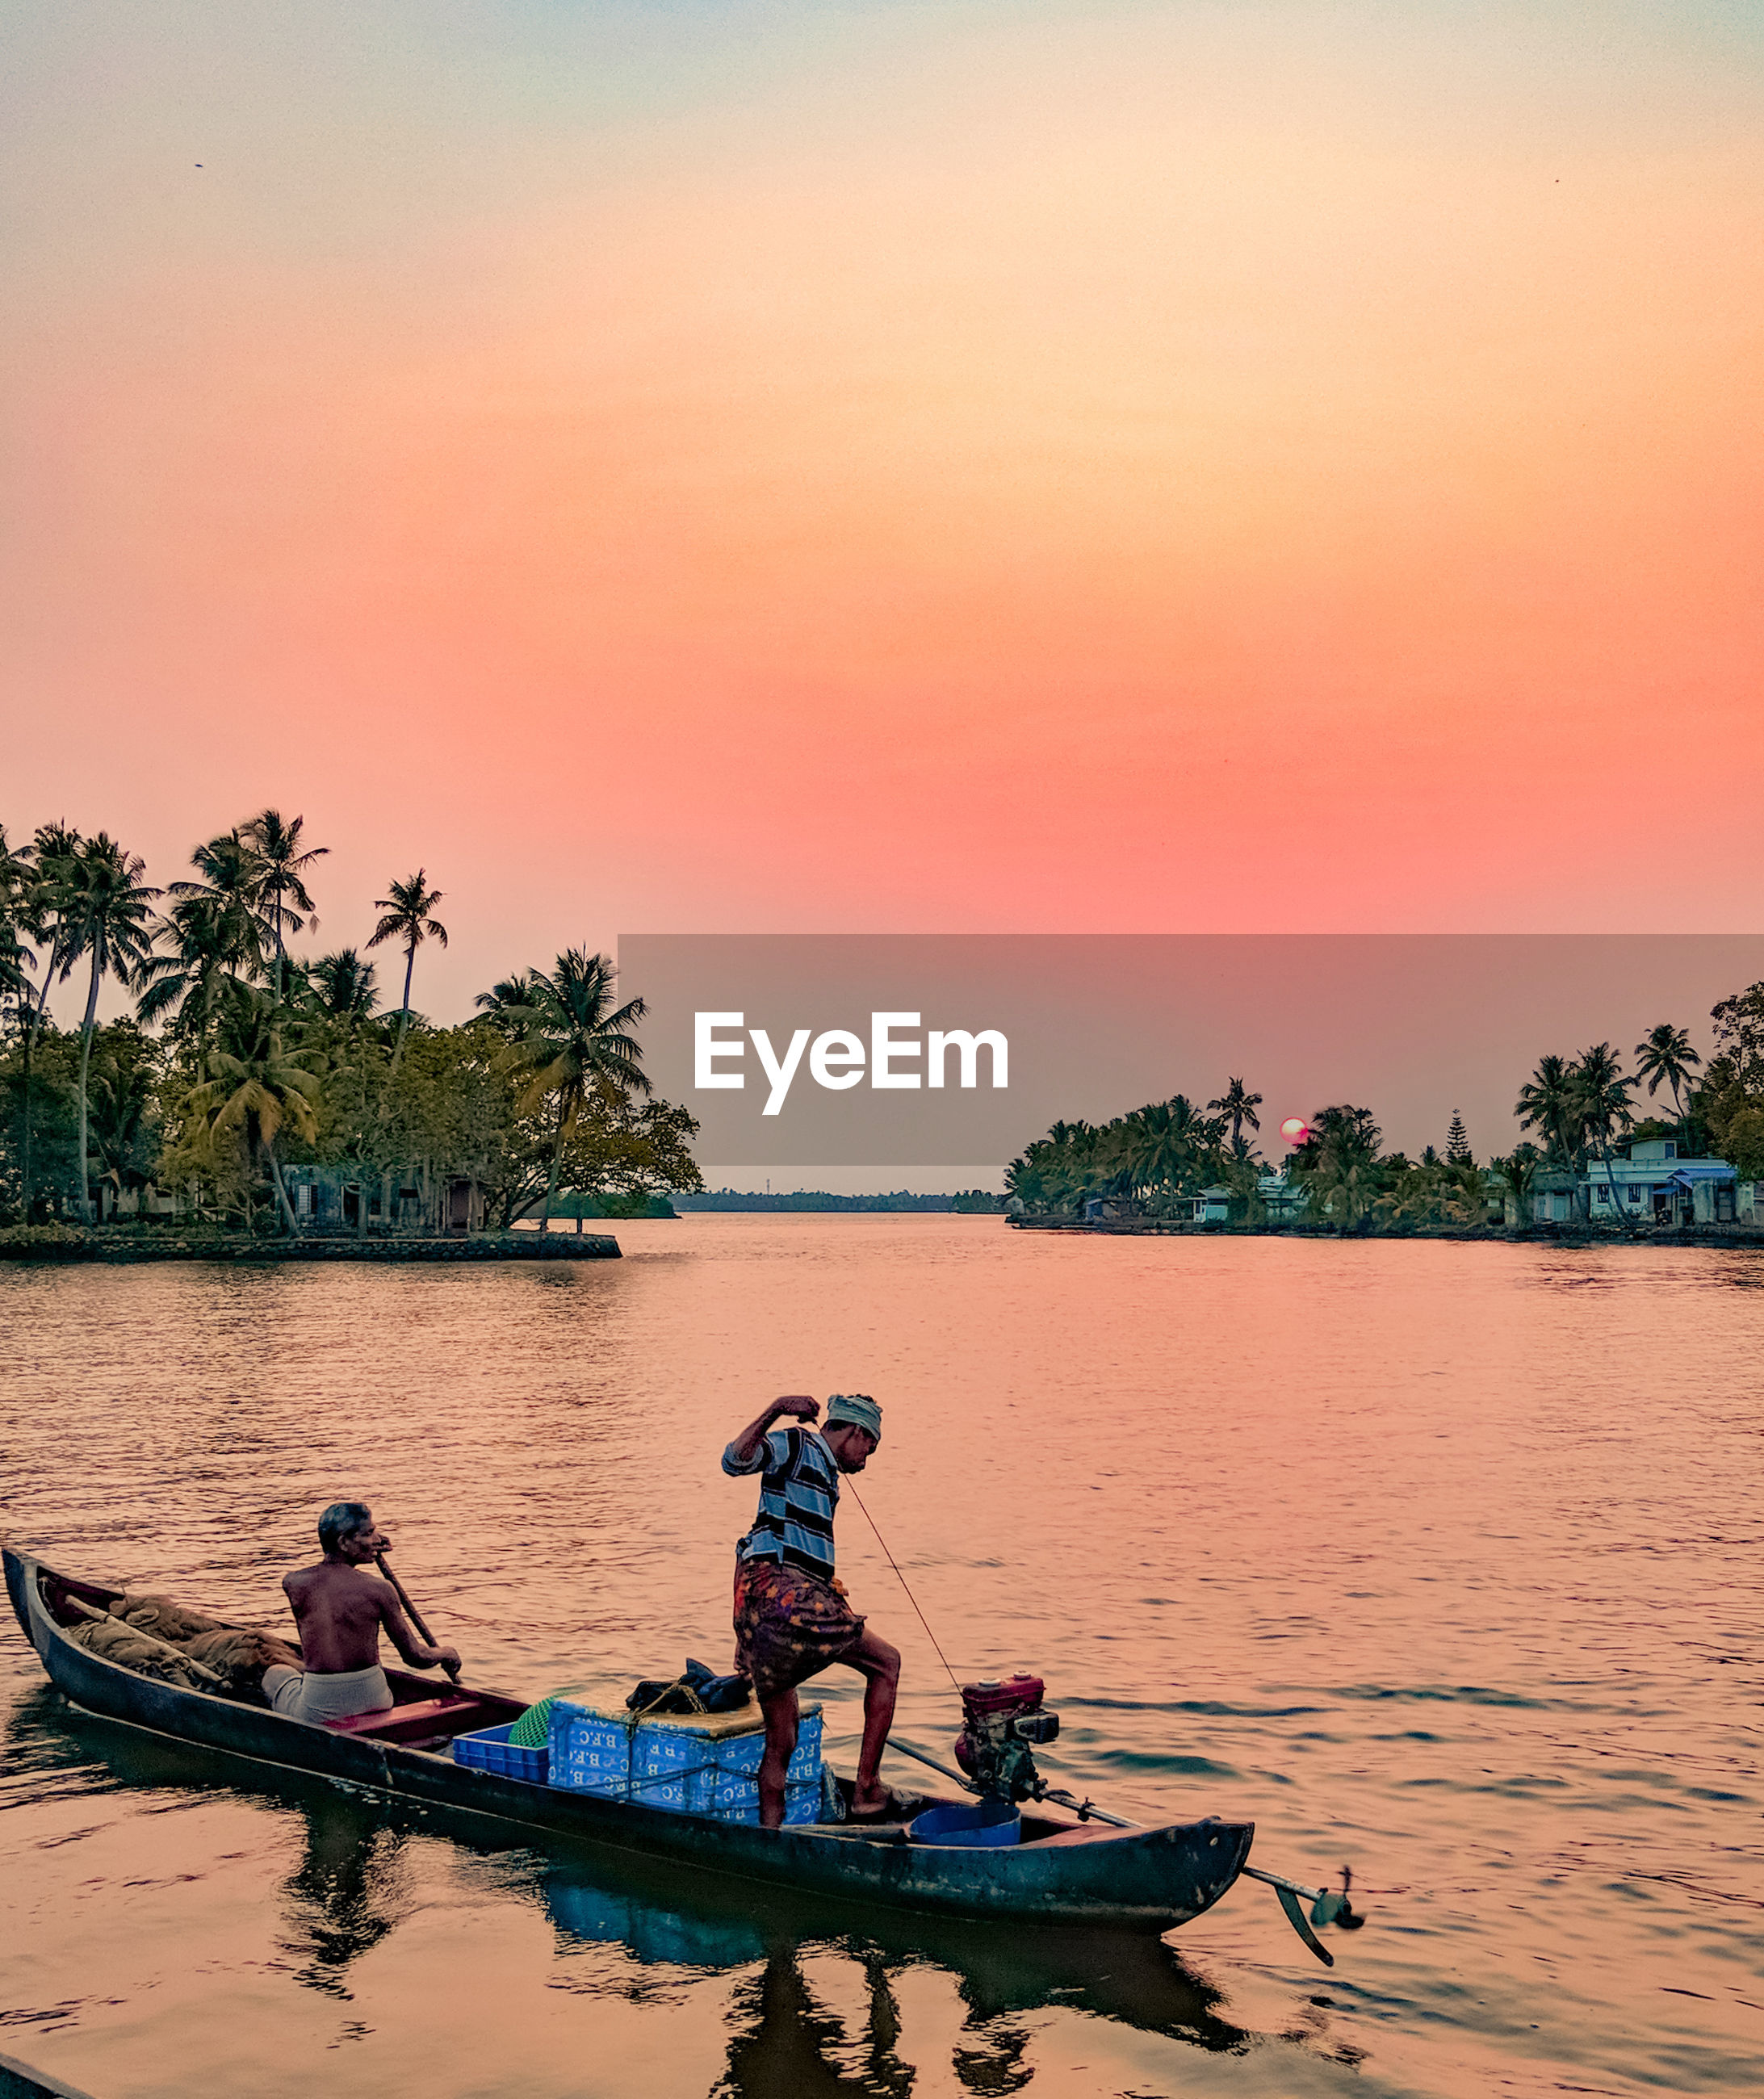 Fishermen in boat on lake against clear sky during sunset